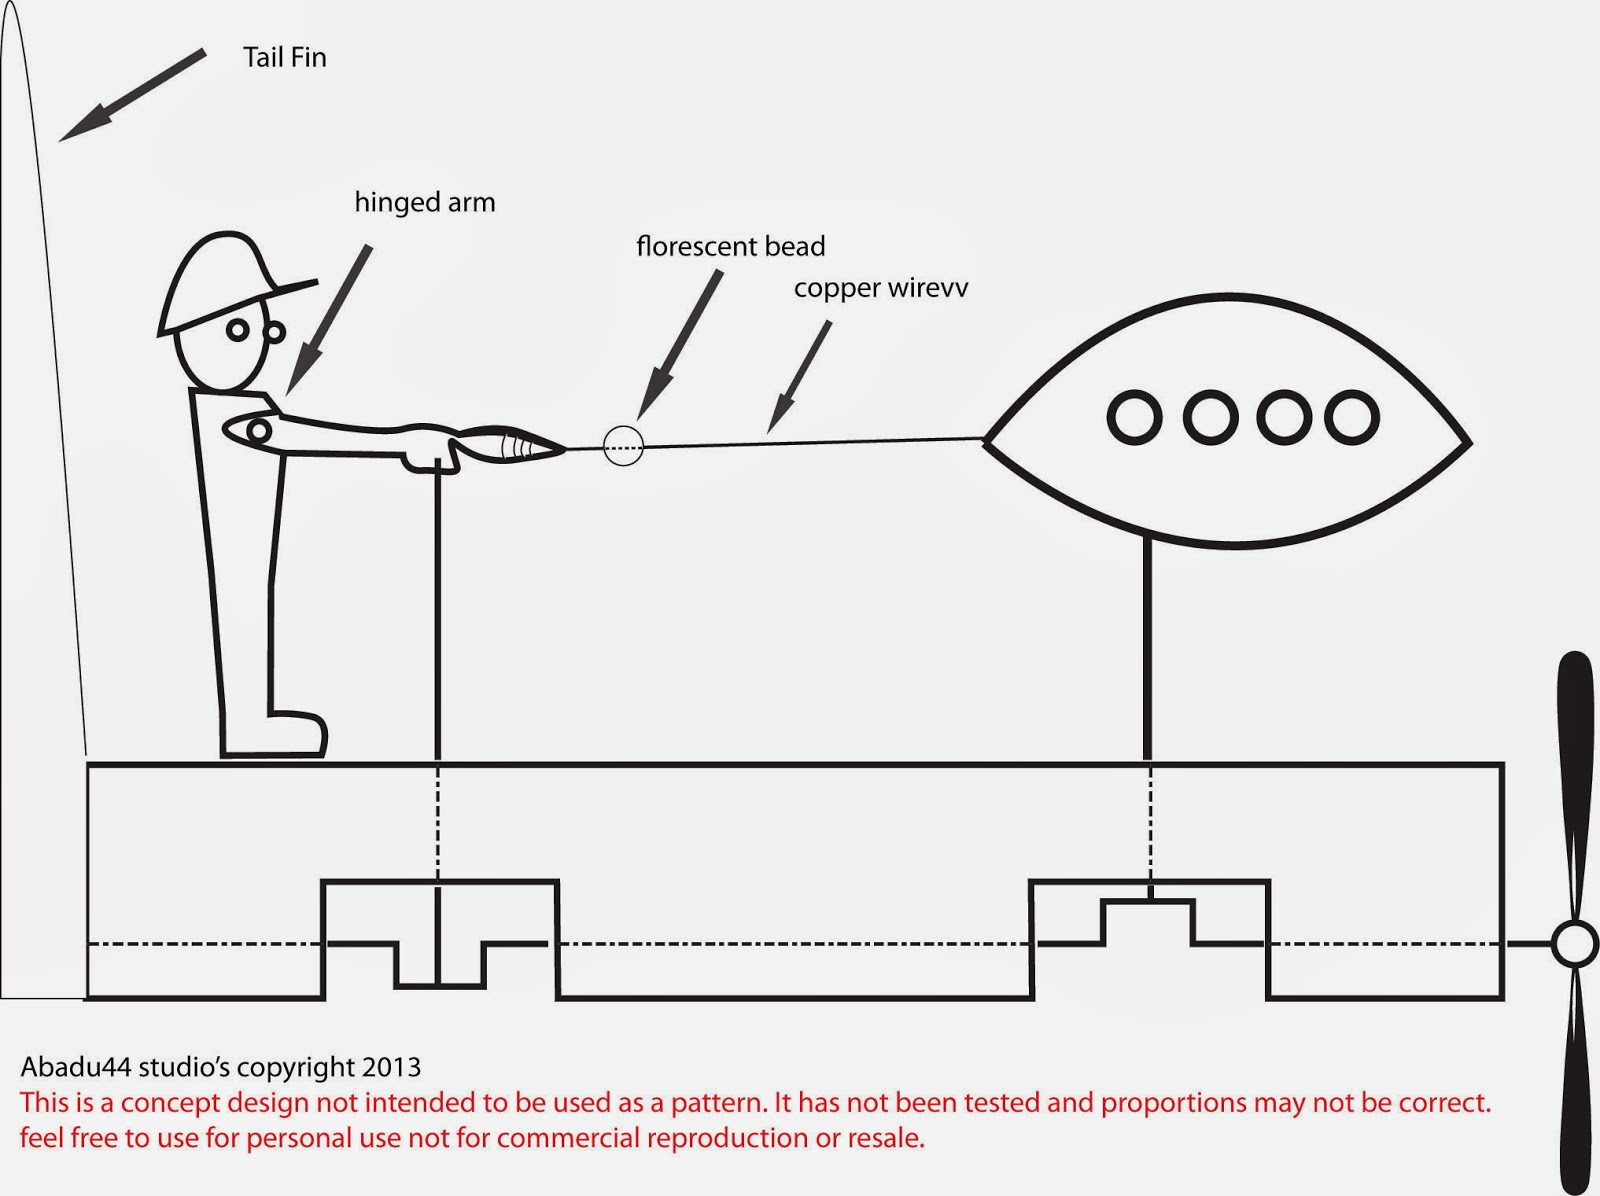 Best ideas about DIY Whirligig Plans . Save or Pin Woodwork Wood Whirligig Plans PDF Plans Now.